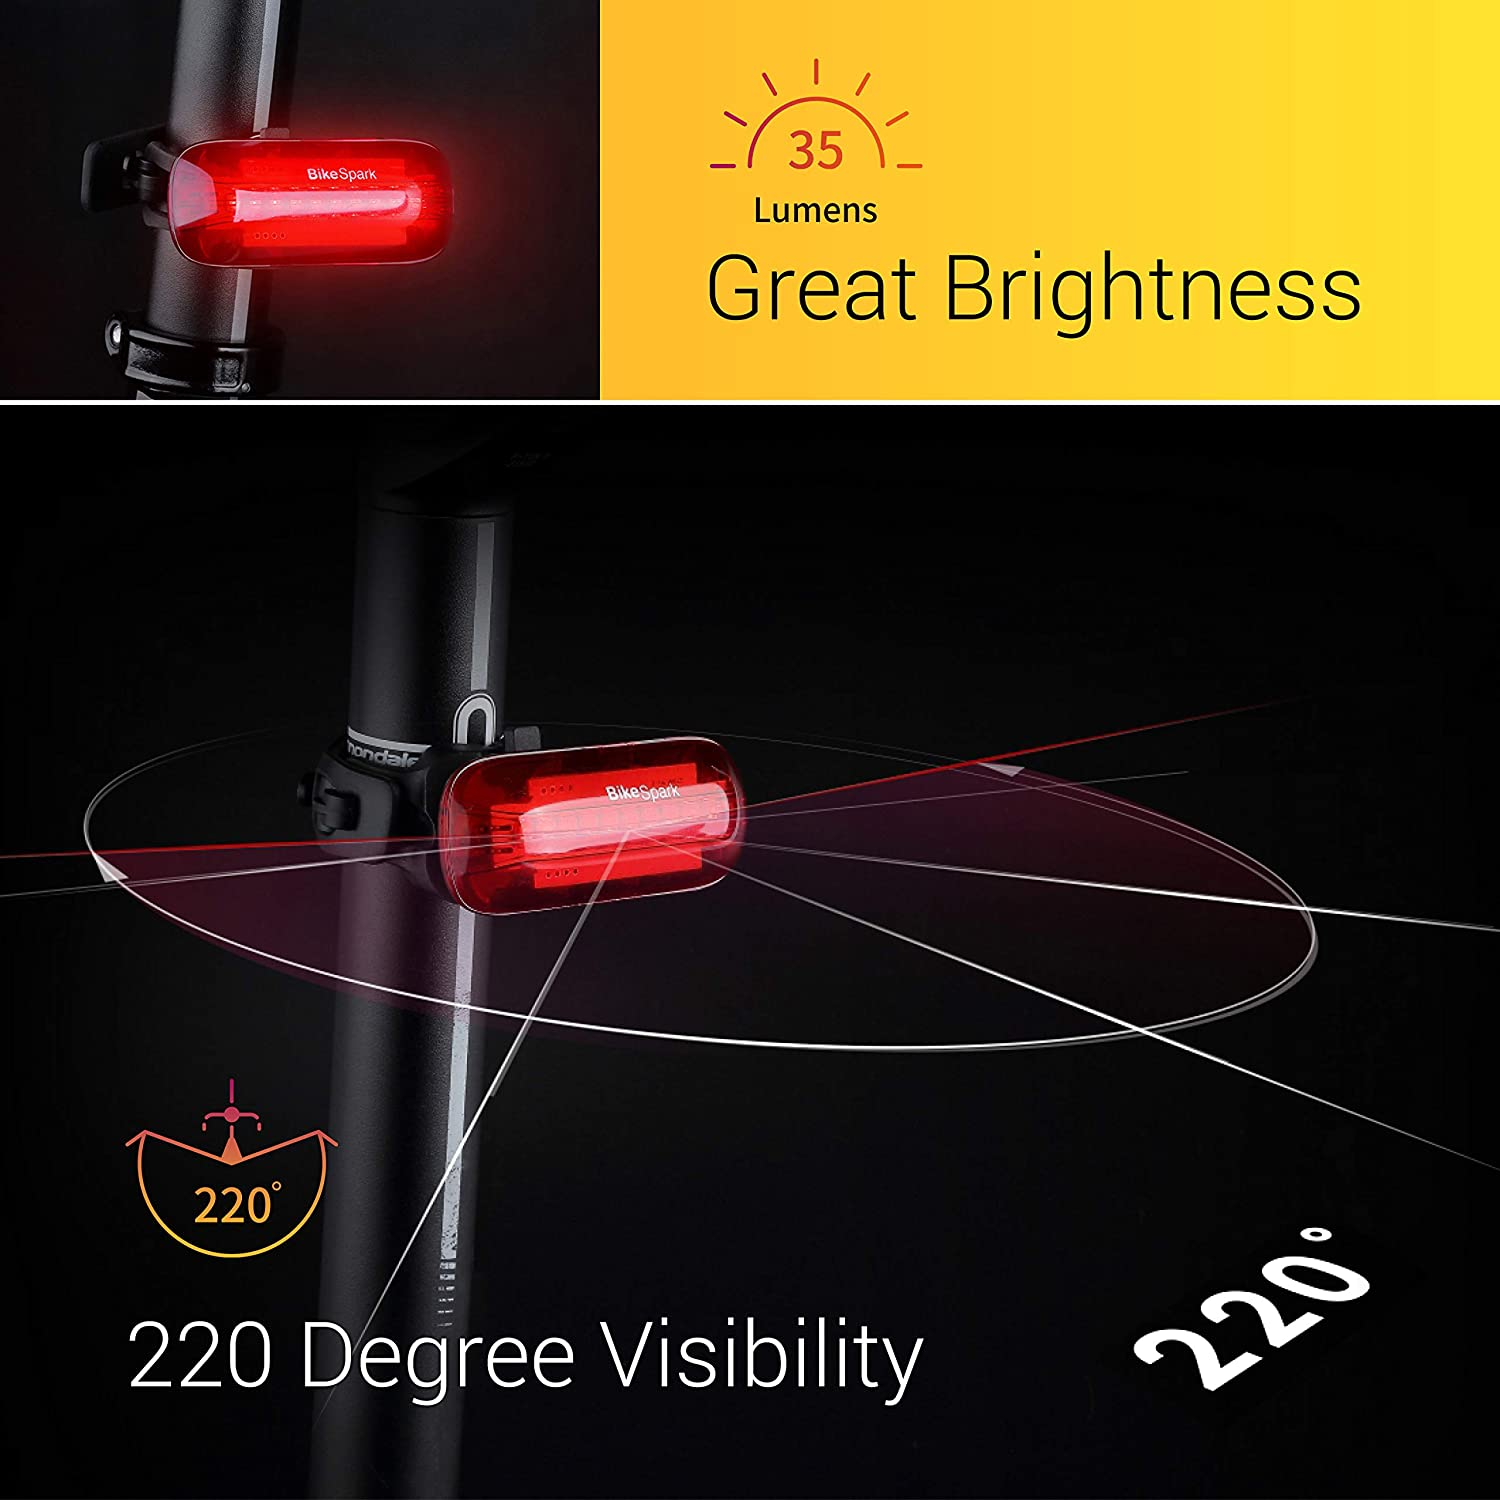 BikeSpark Auto-Sensing Rear Light G3-35 lm Super Bright LED Bike Tail Light with 220 Degree Visibility – Auto On Off Deceleration Flash by Motion Sensing – USB Rechargeable – Water Resistant IPX5